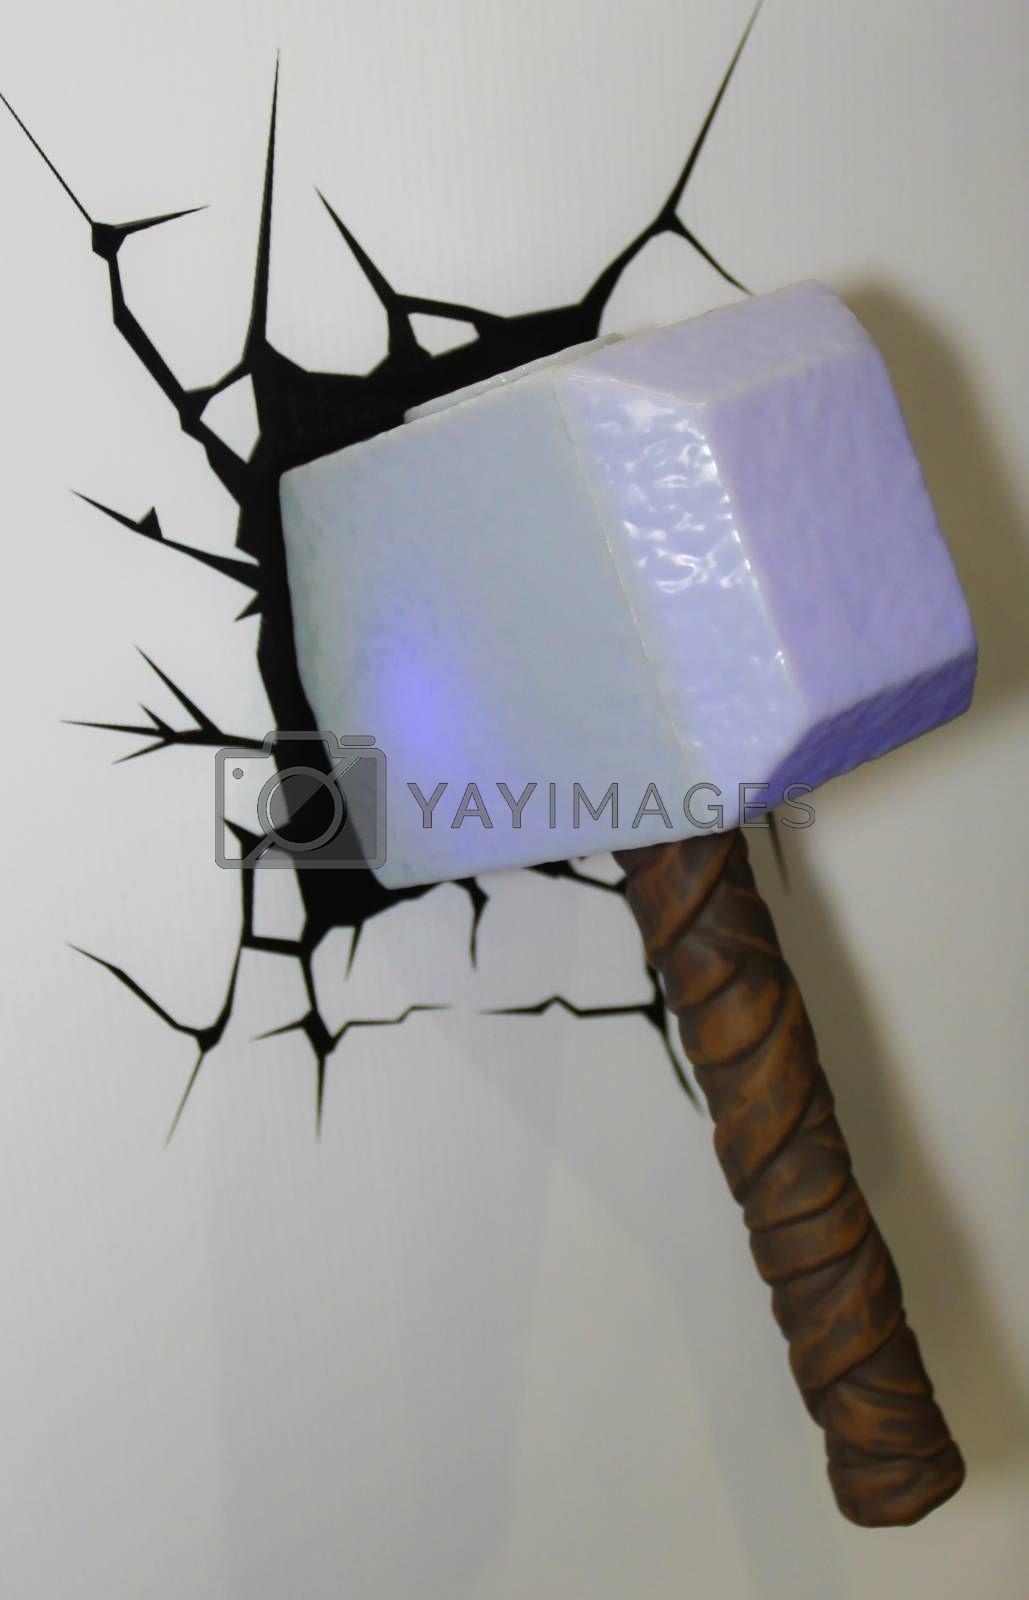 Royalty free image of A model of the Thor Hammer from the movies and comics 3 by redthirteen